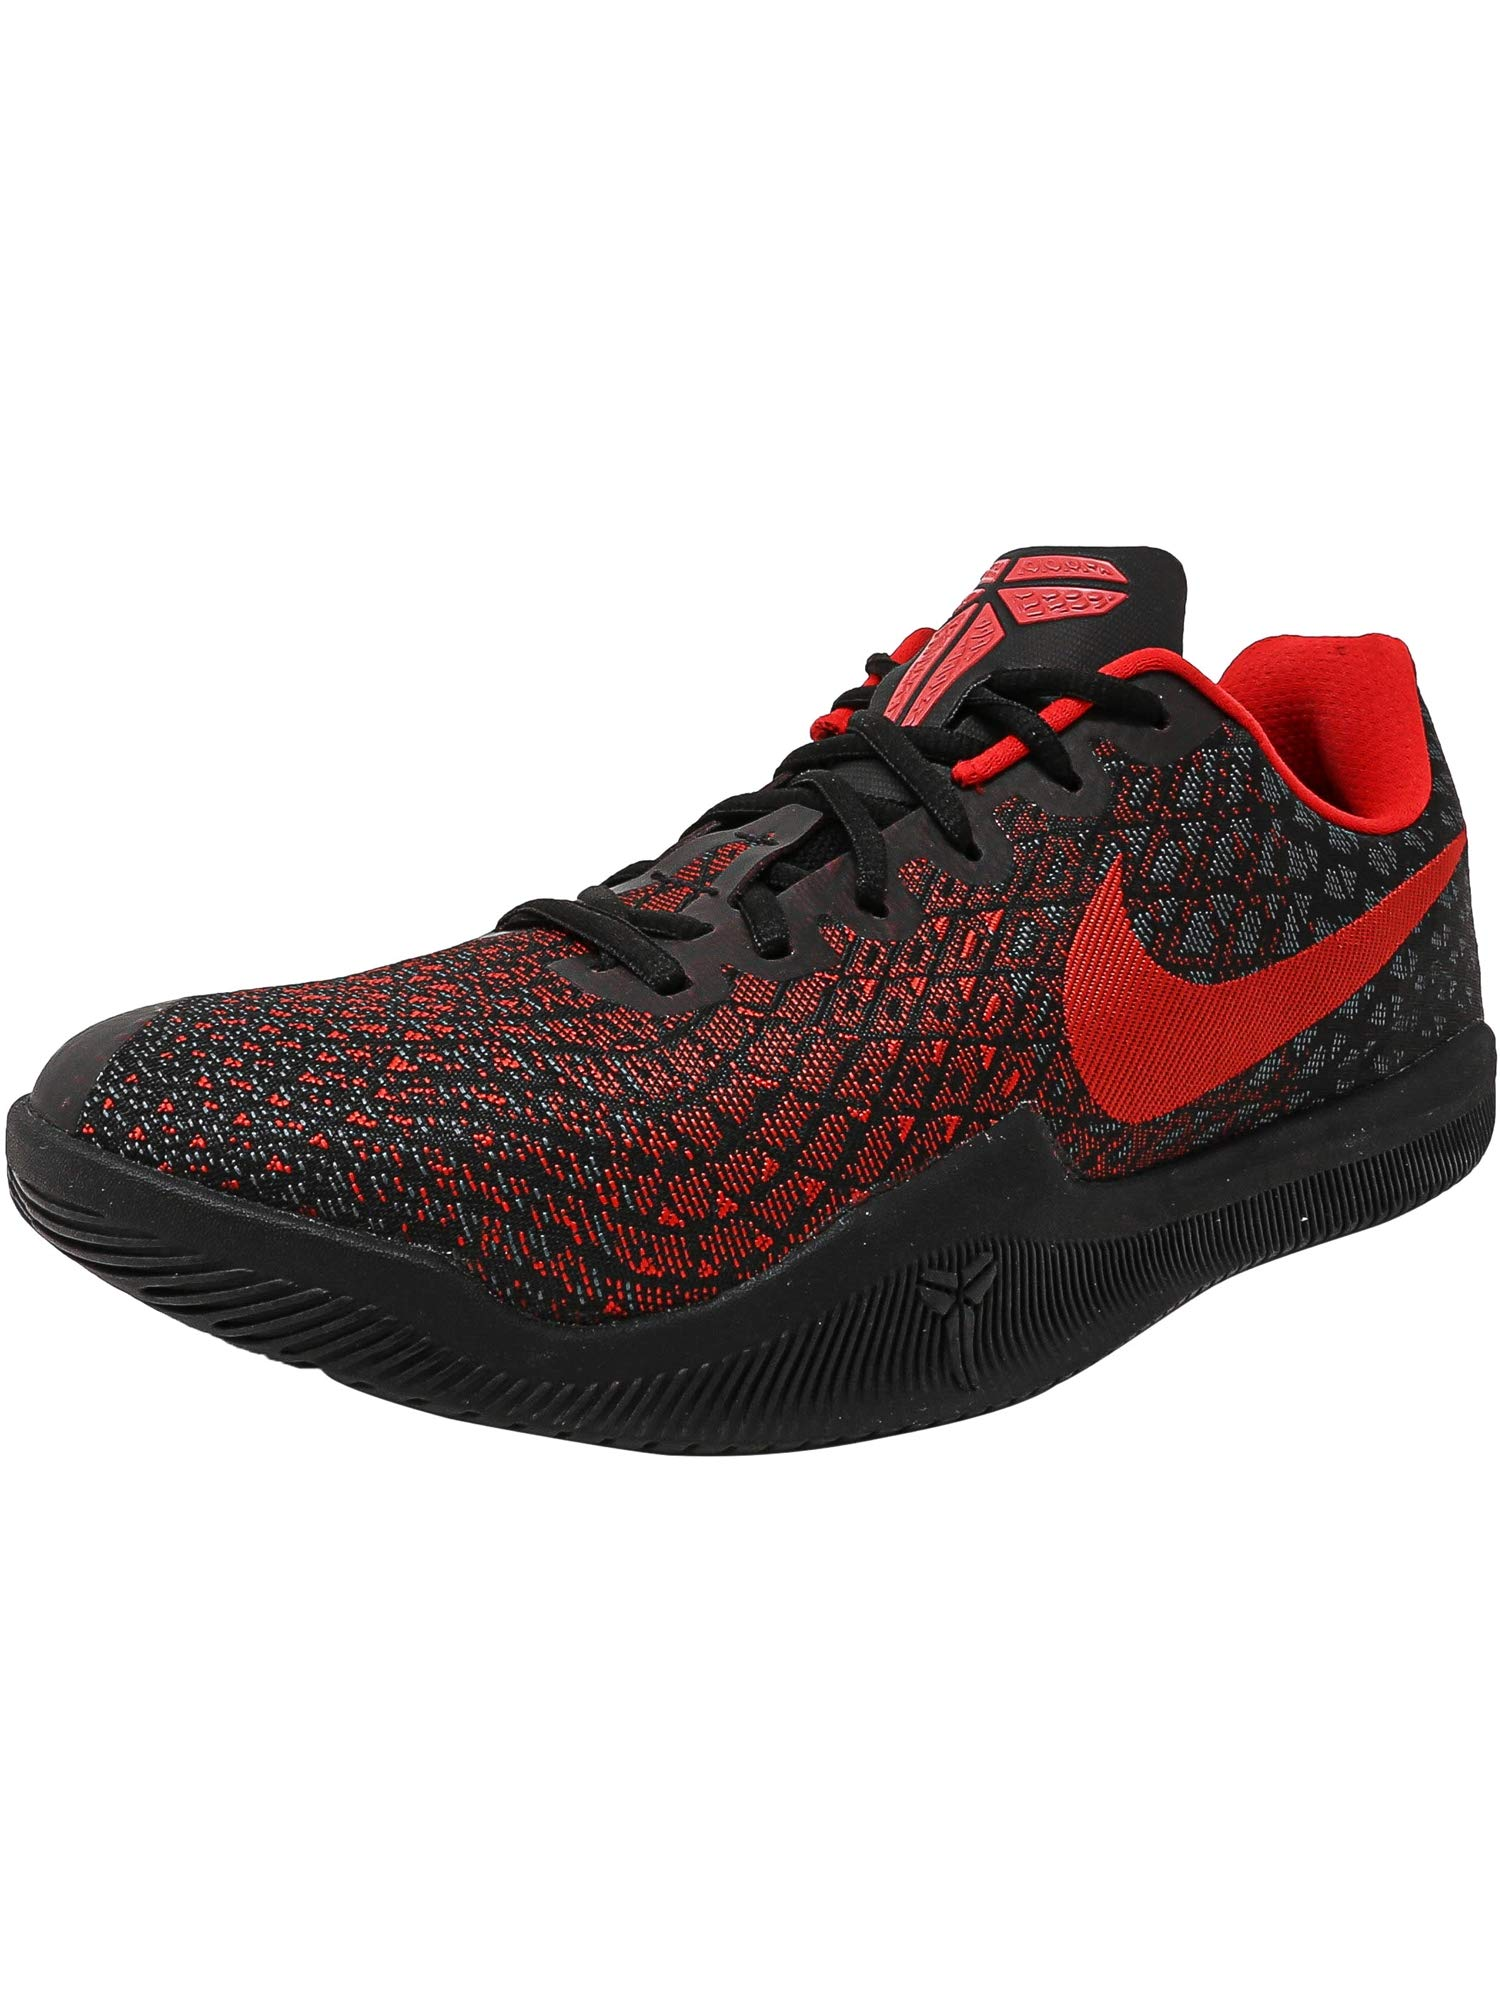 Galleon - Nike Men s Kobe Mamba Instinct Basketball Shoes (12 9caa7b1e1a2a